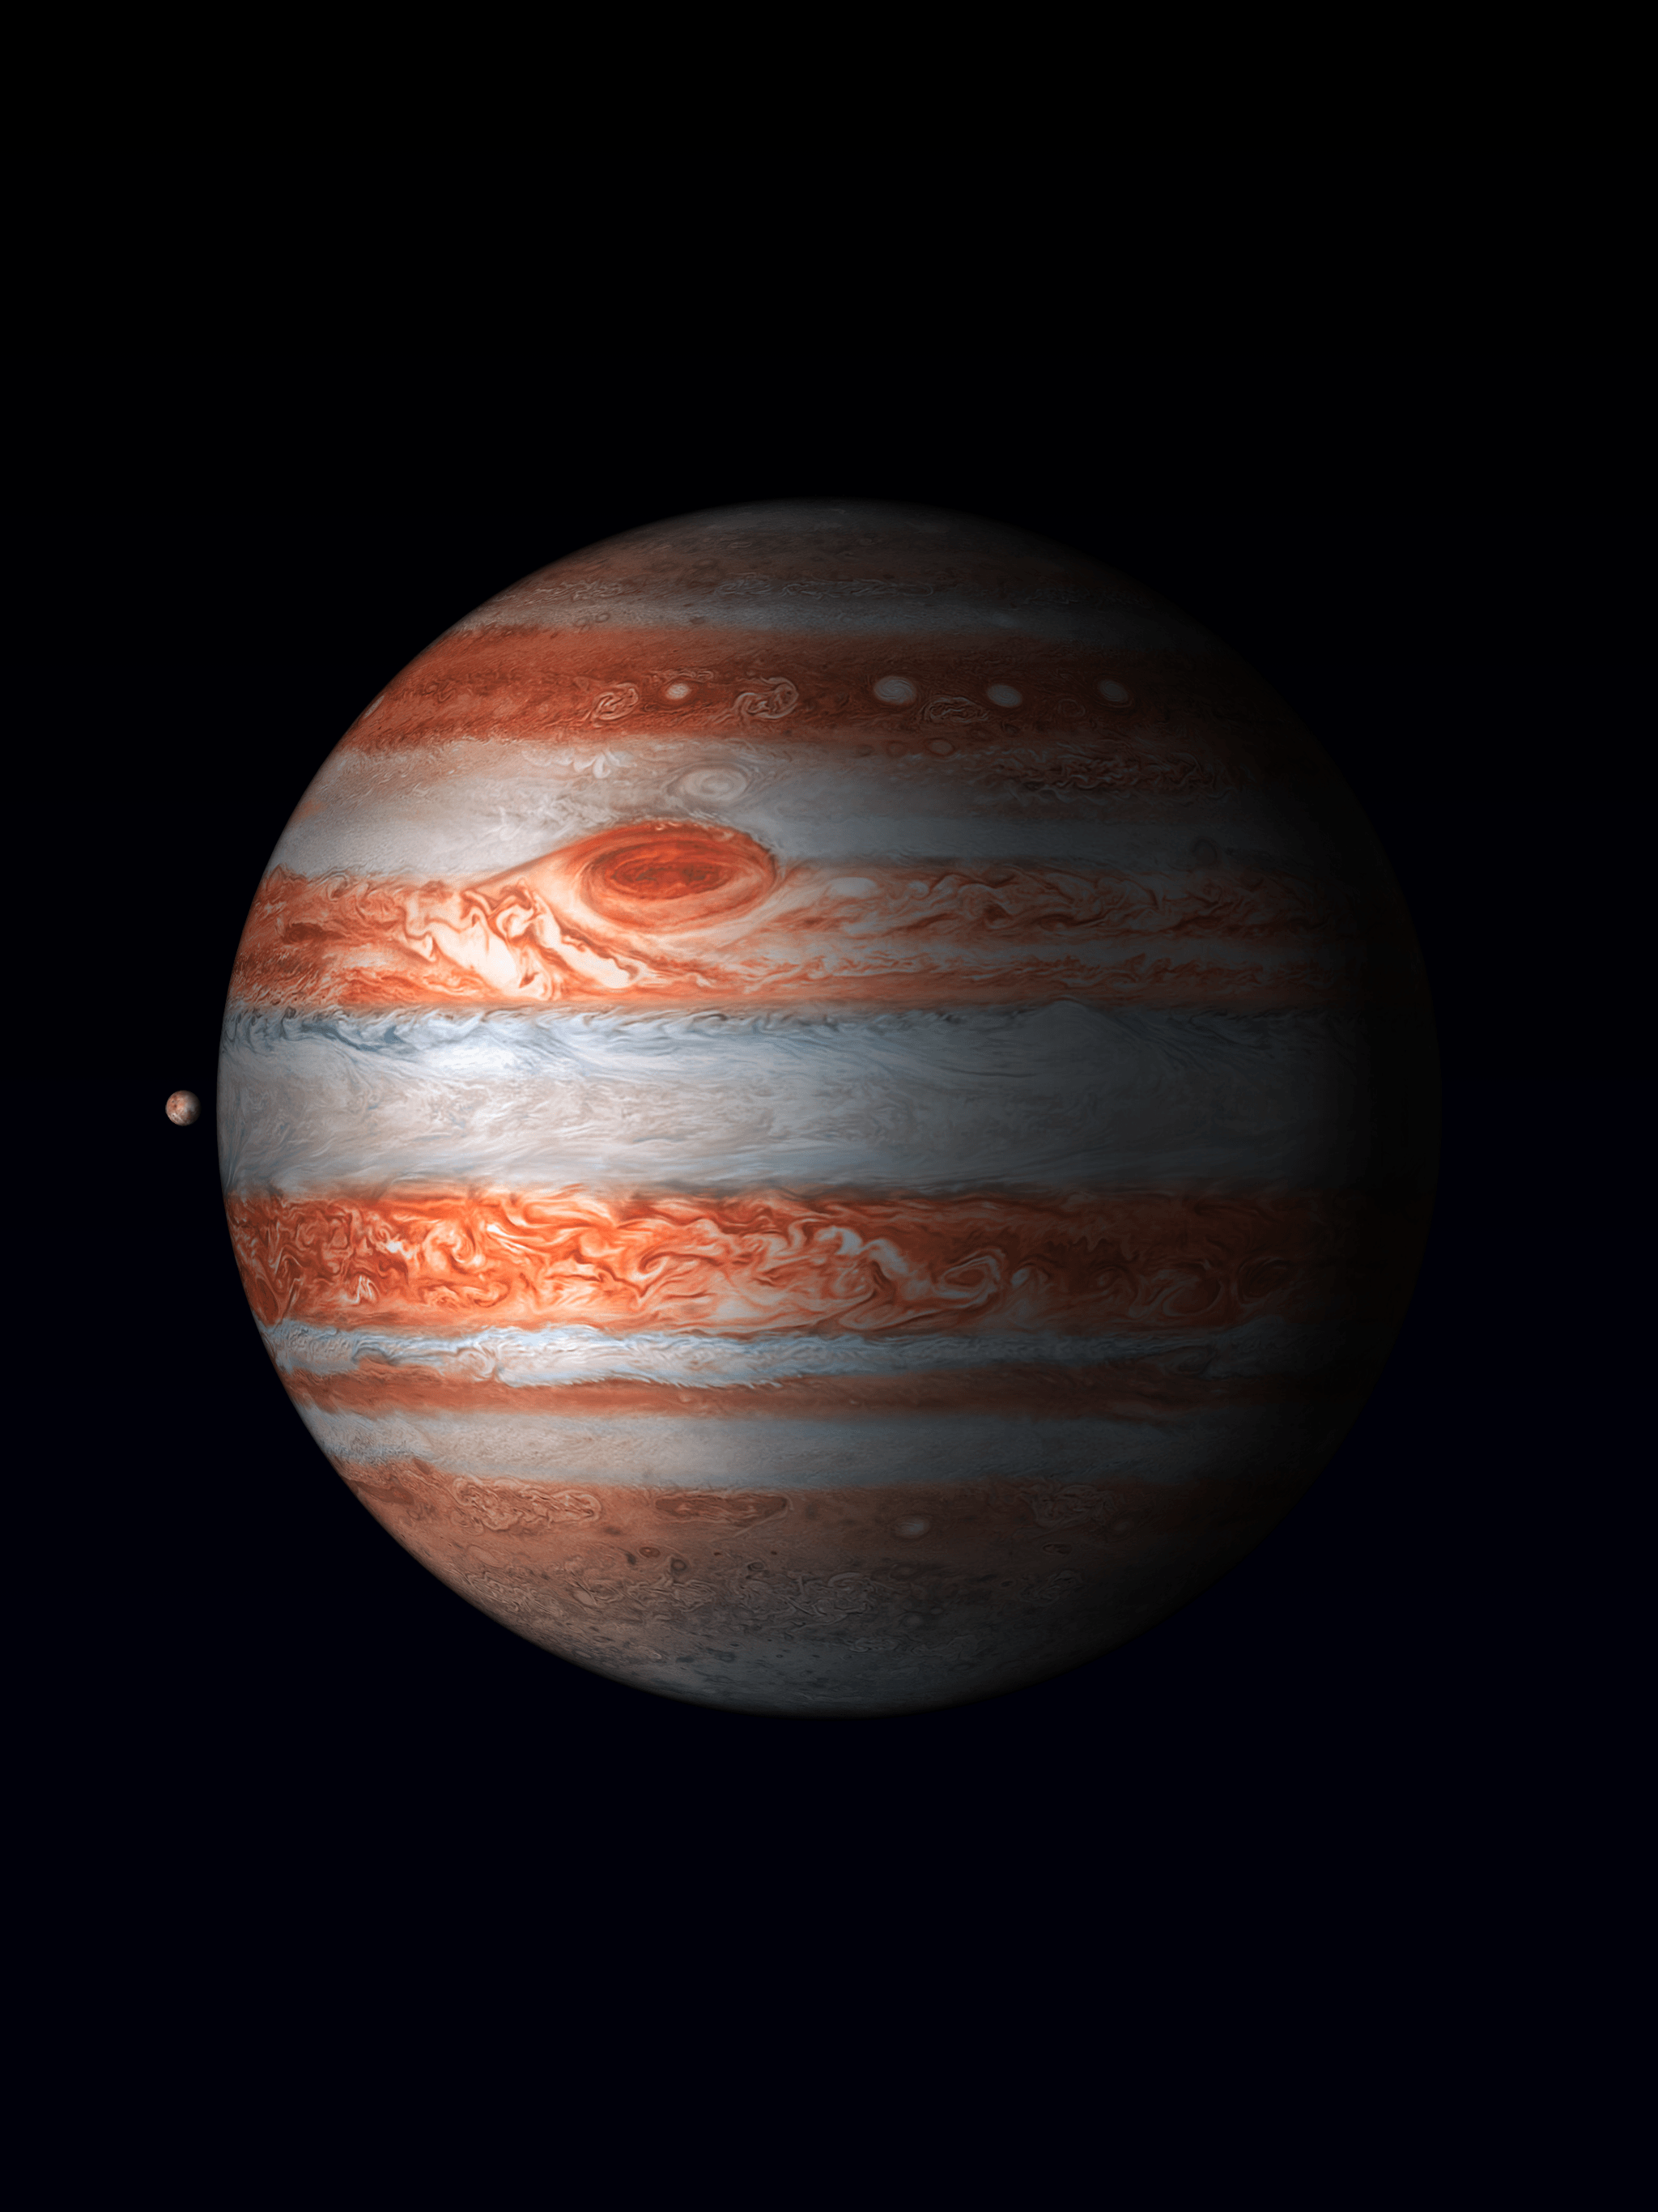 2048x2732 Jupiter Wallpapers Jupiter Backgrounds and Images 32 2048x2732